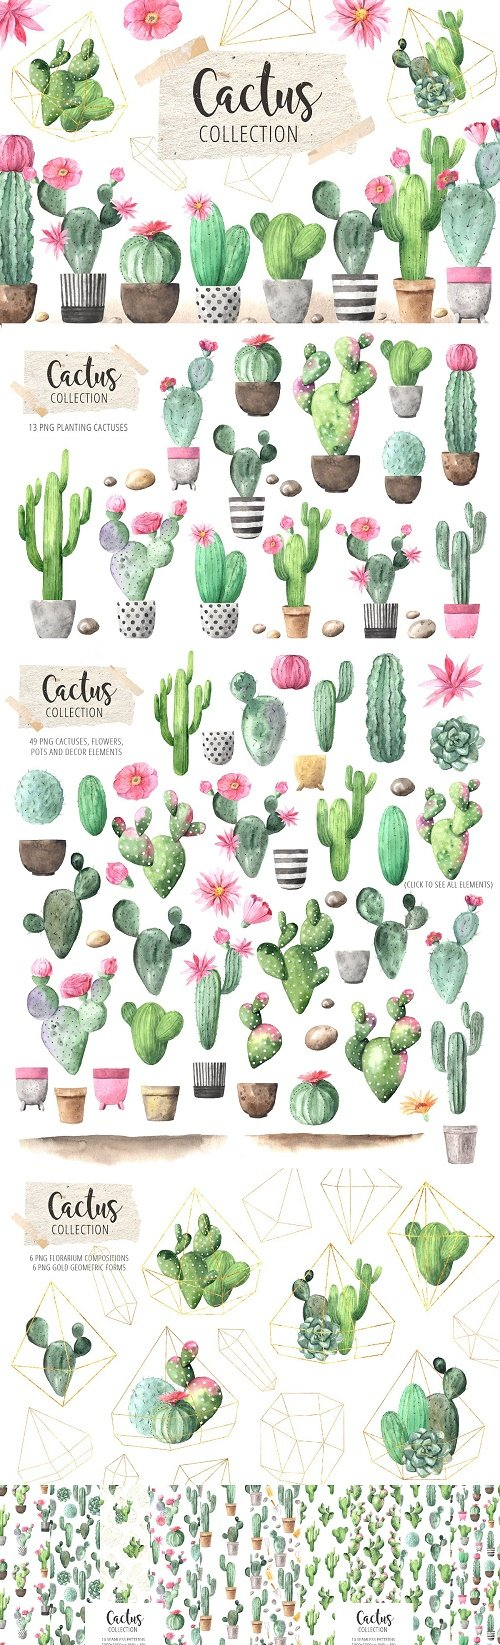 Watercolor Exotic Cactus Collection - 3330036